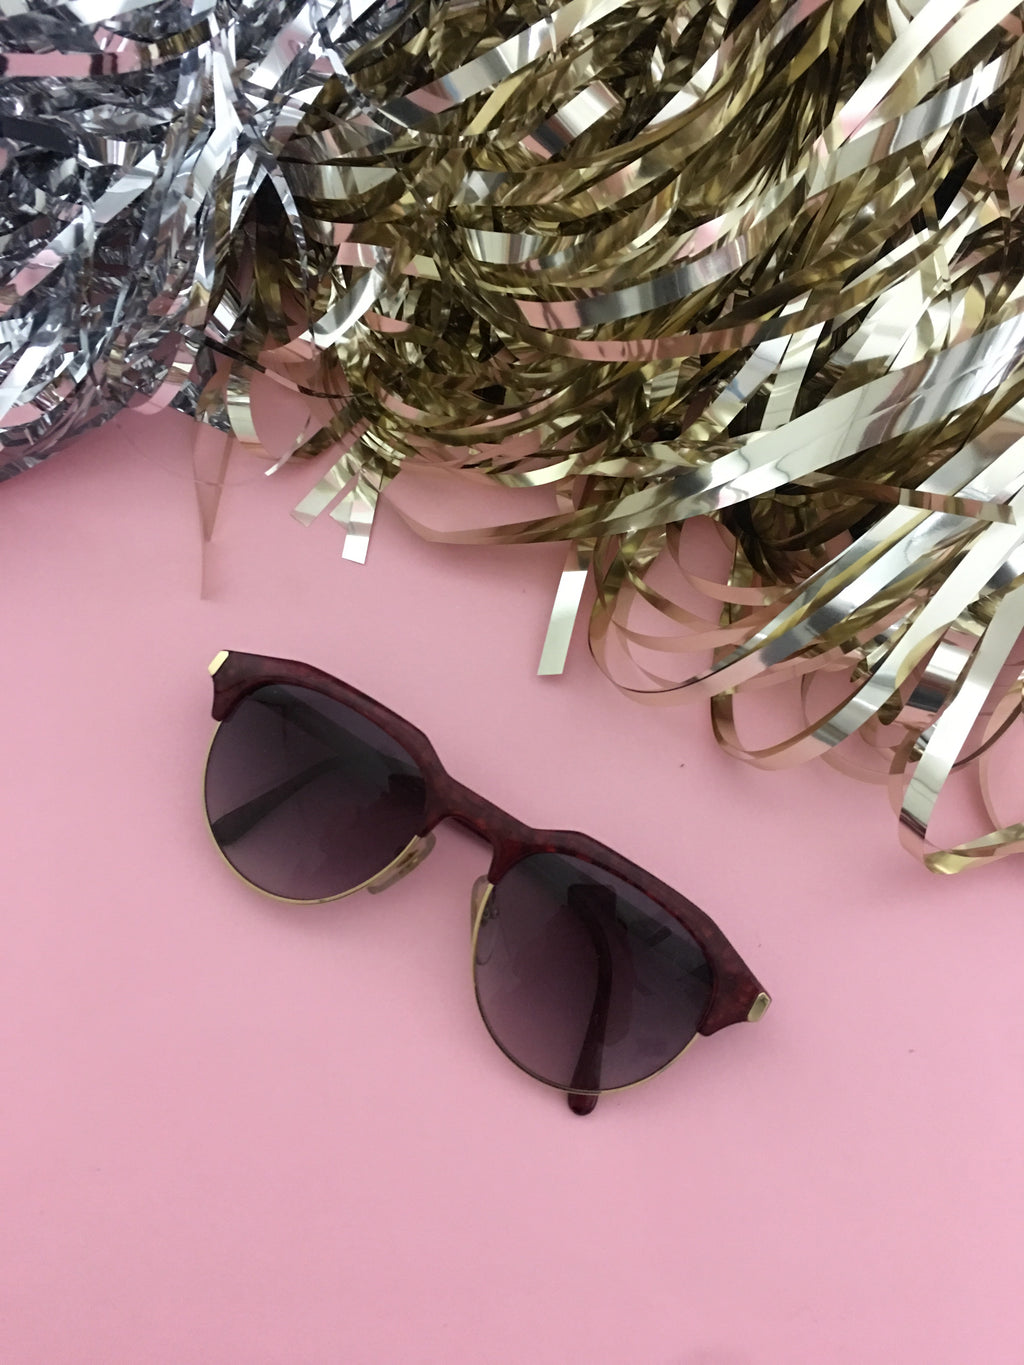 True Vintage Sunglasses - 1970s Christie Sunglasses